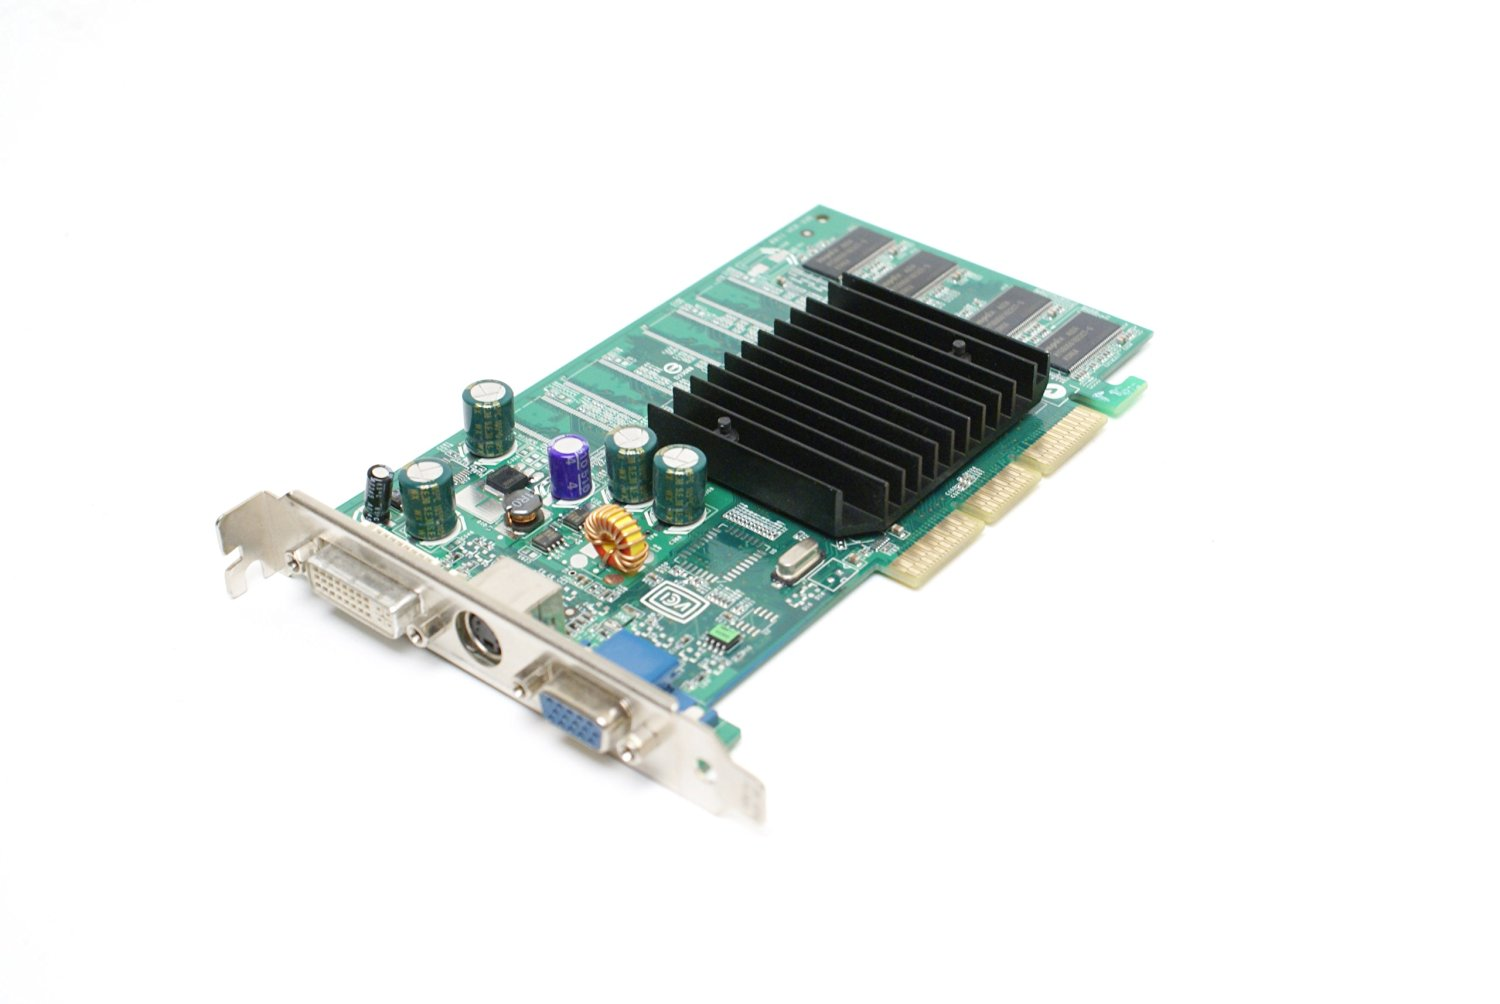 GEFORCE FX 5200 AGP 8X 128MB DRIVERS FOR WINDOWS XP